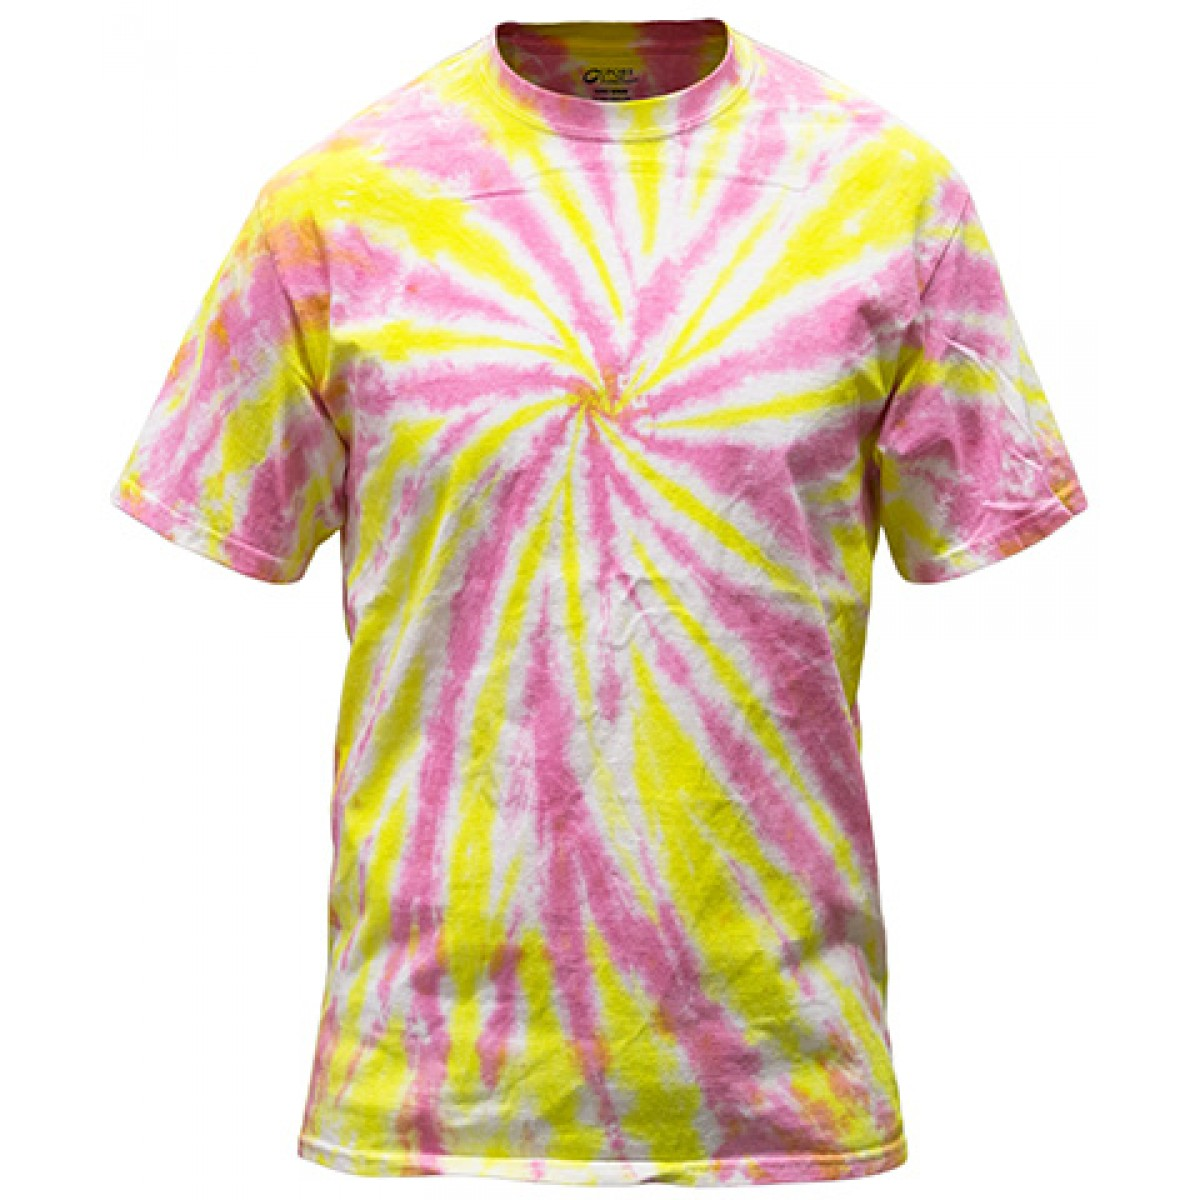 Multi-Color Tie-Dye Tee -Pink/Yellow-3XL